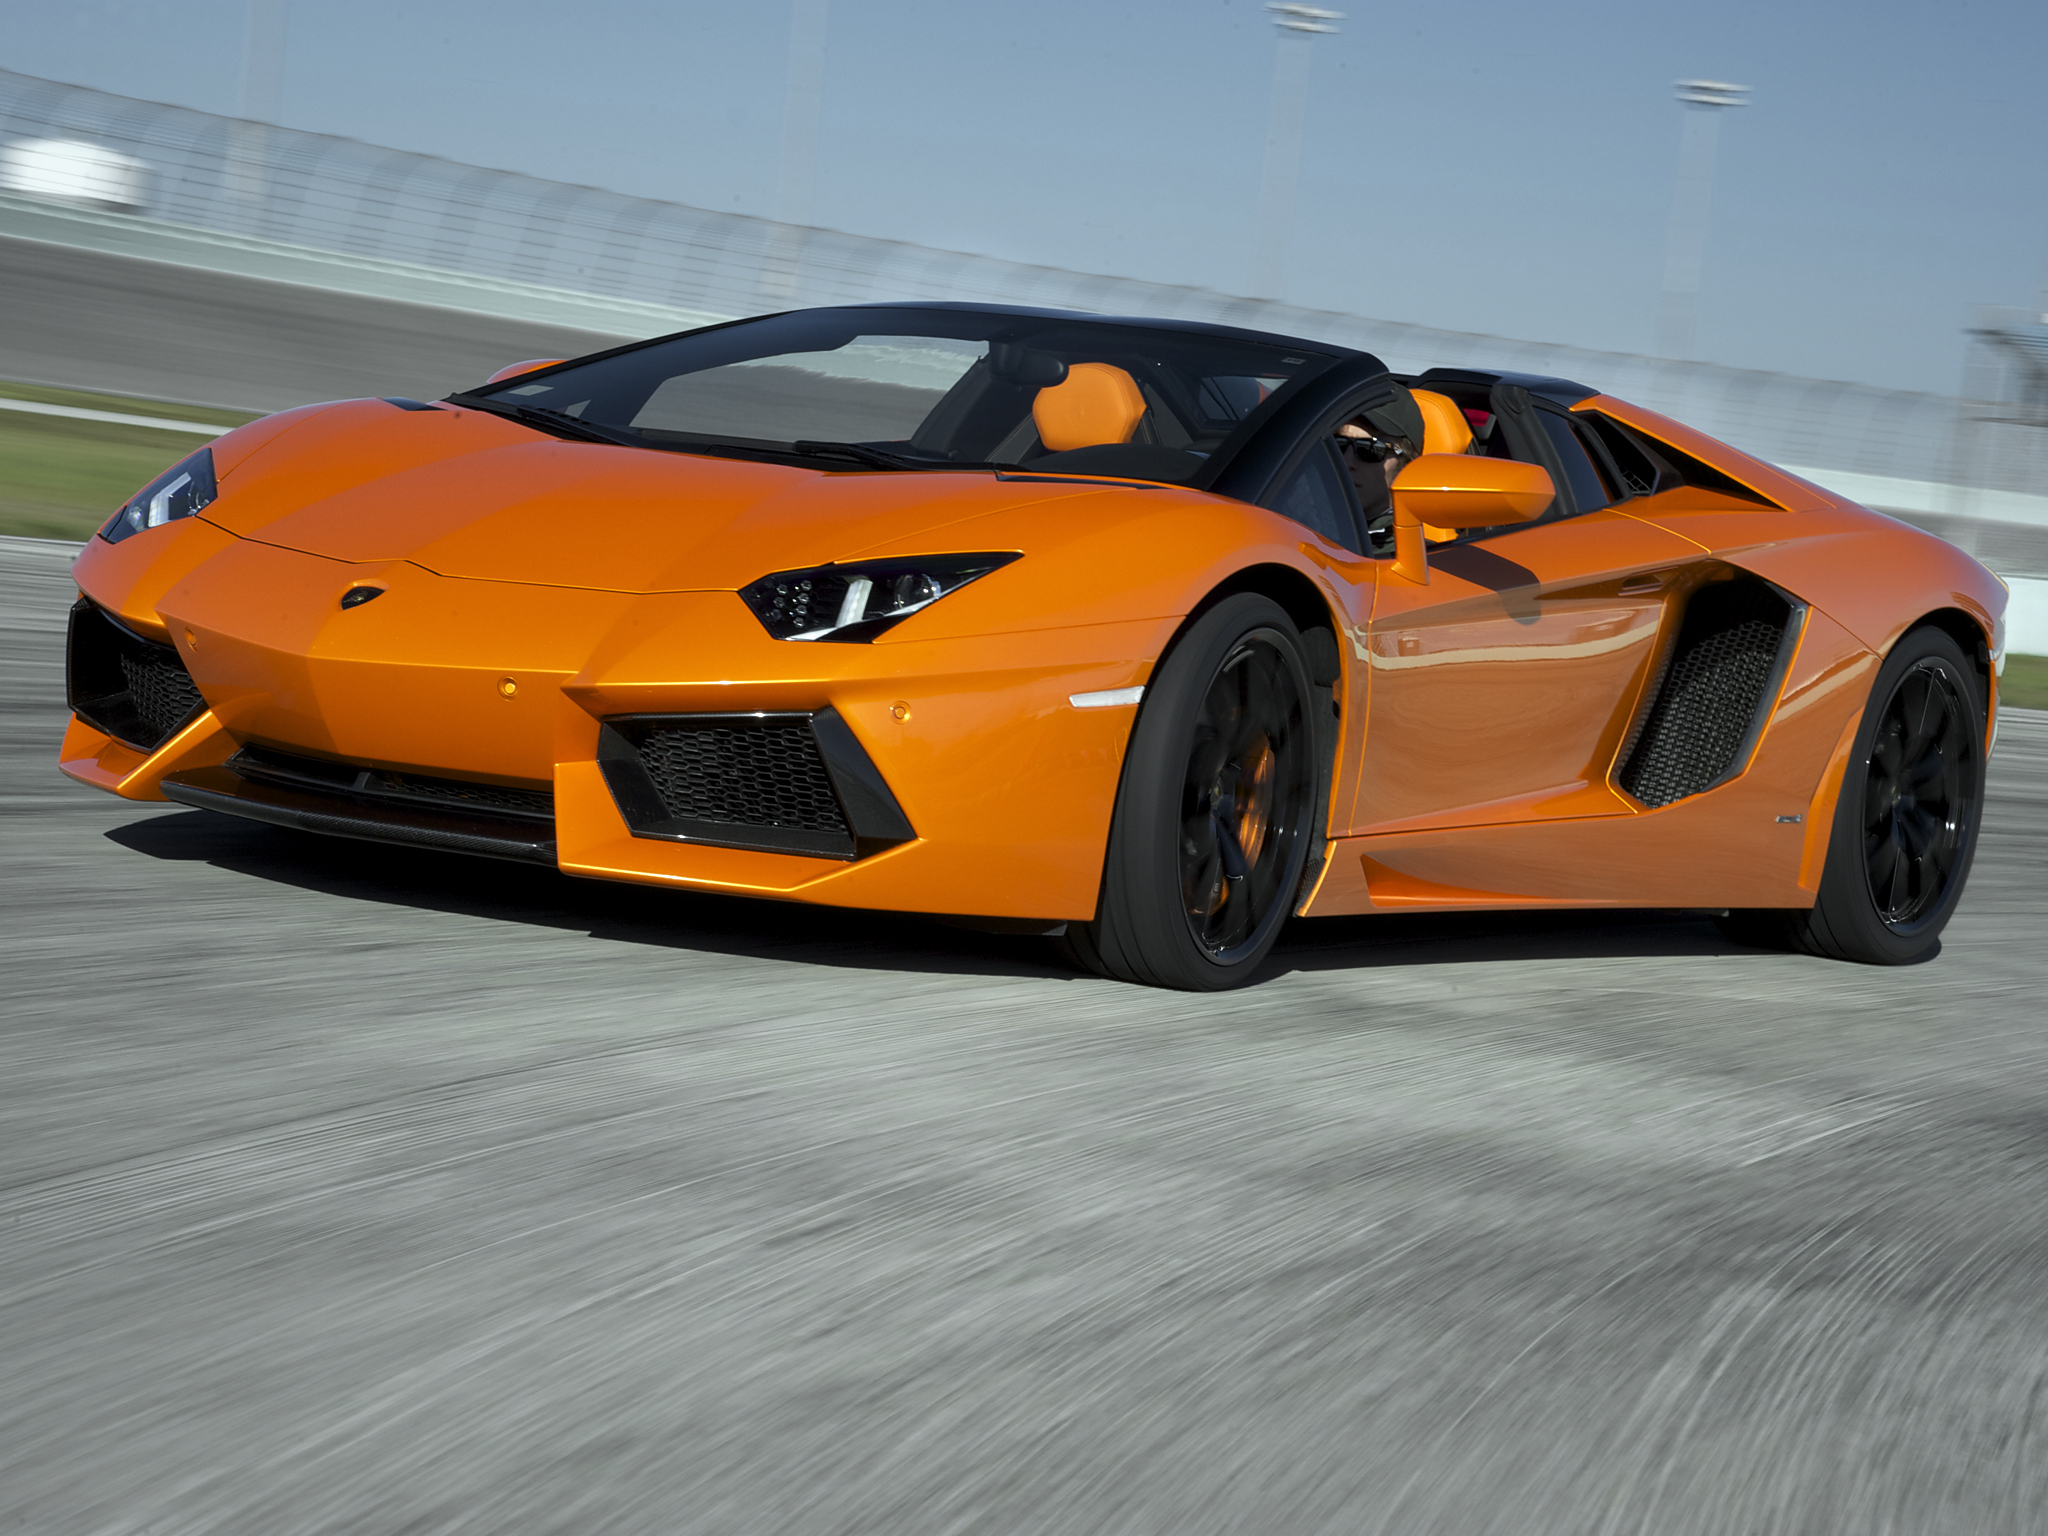 2014 Lamborghini Aventador LP700 4 Roadster supercar orange wallpaper 2048x1536